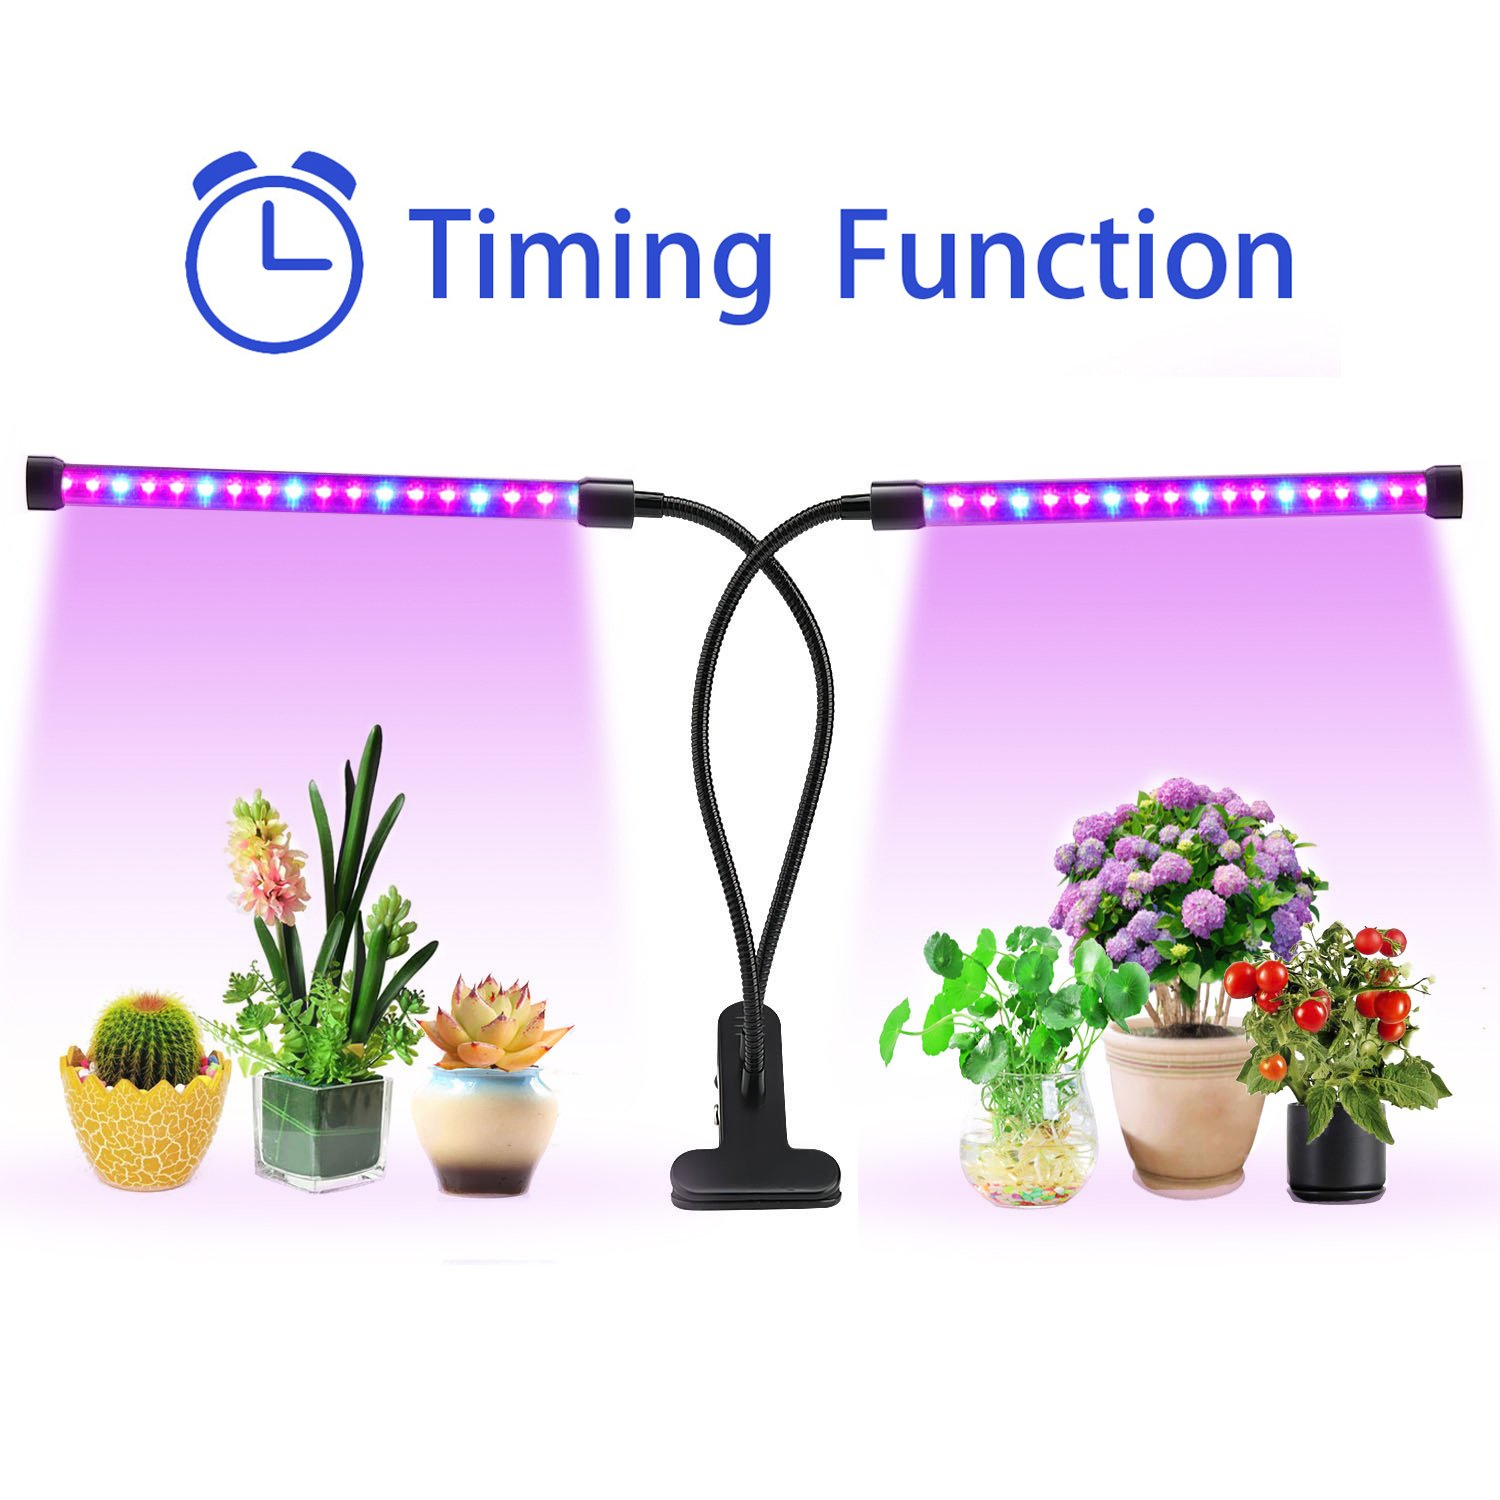 Lovebay Timing Function Dual Head Grow Light 36LED 5 Dimmable Levels Grow Lamp Bulbs with Adjustable 360 Degree Gooseneck for Indoor Plants Hydroponics Greenhouse Gardening [2018 Upgraded] by Lovebay